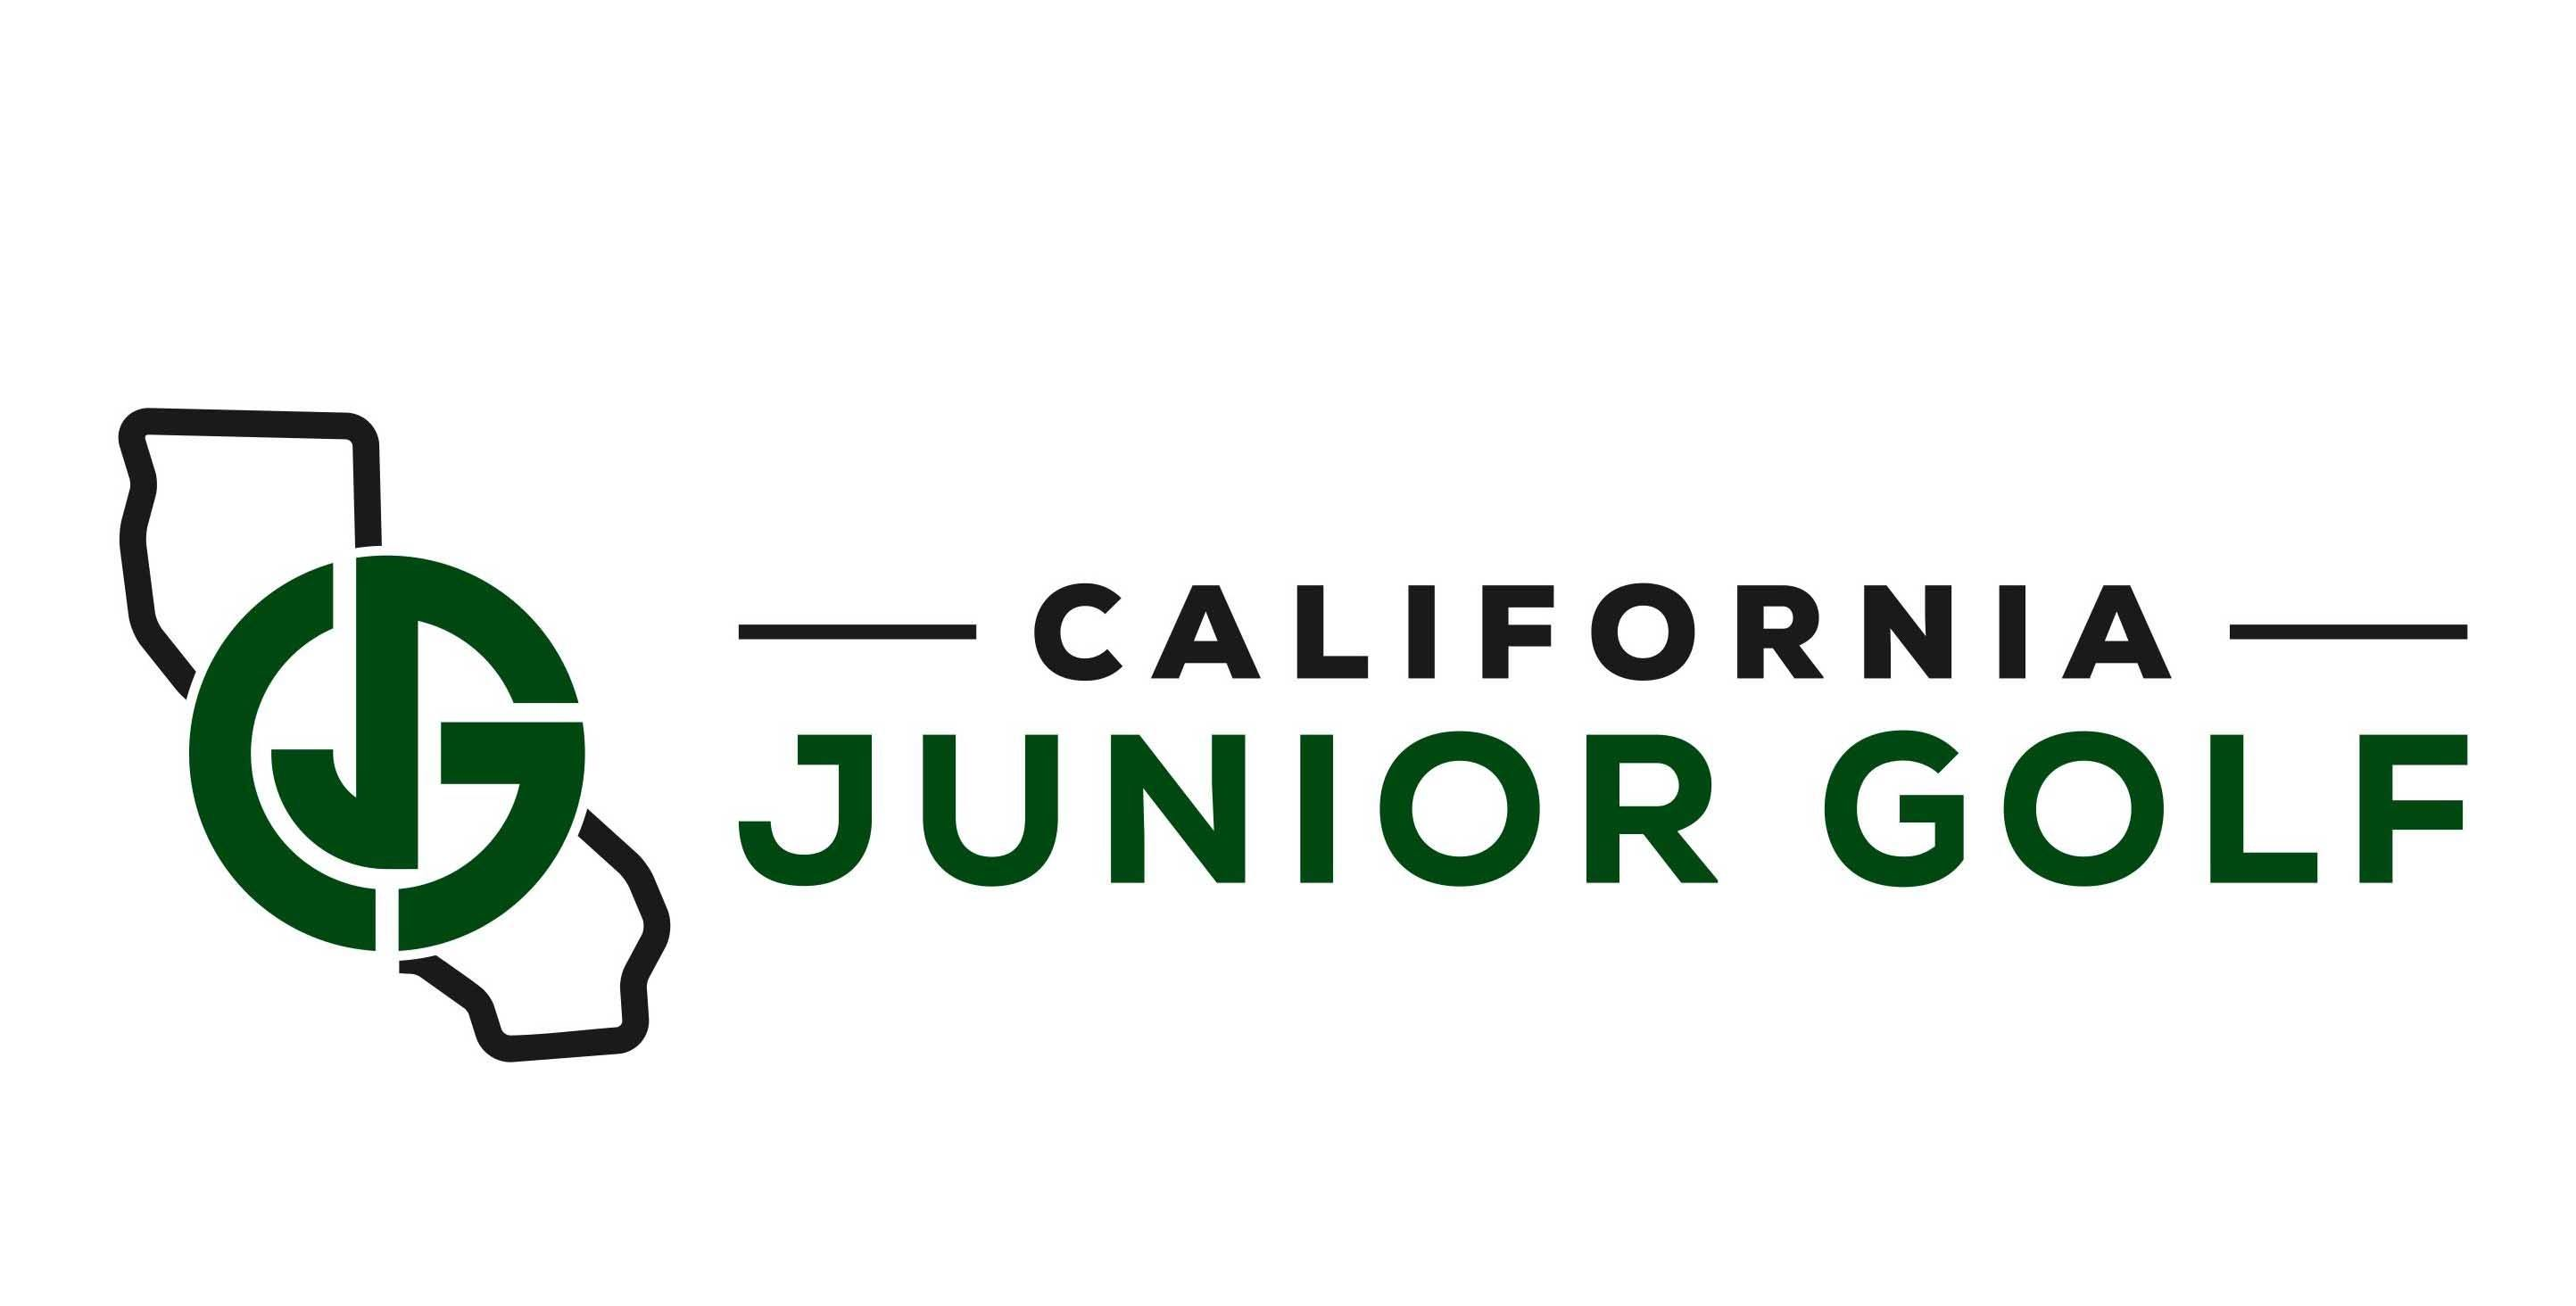 Junior golf tournaments